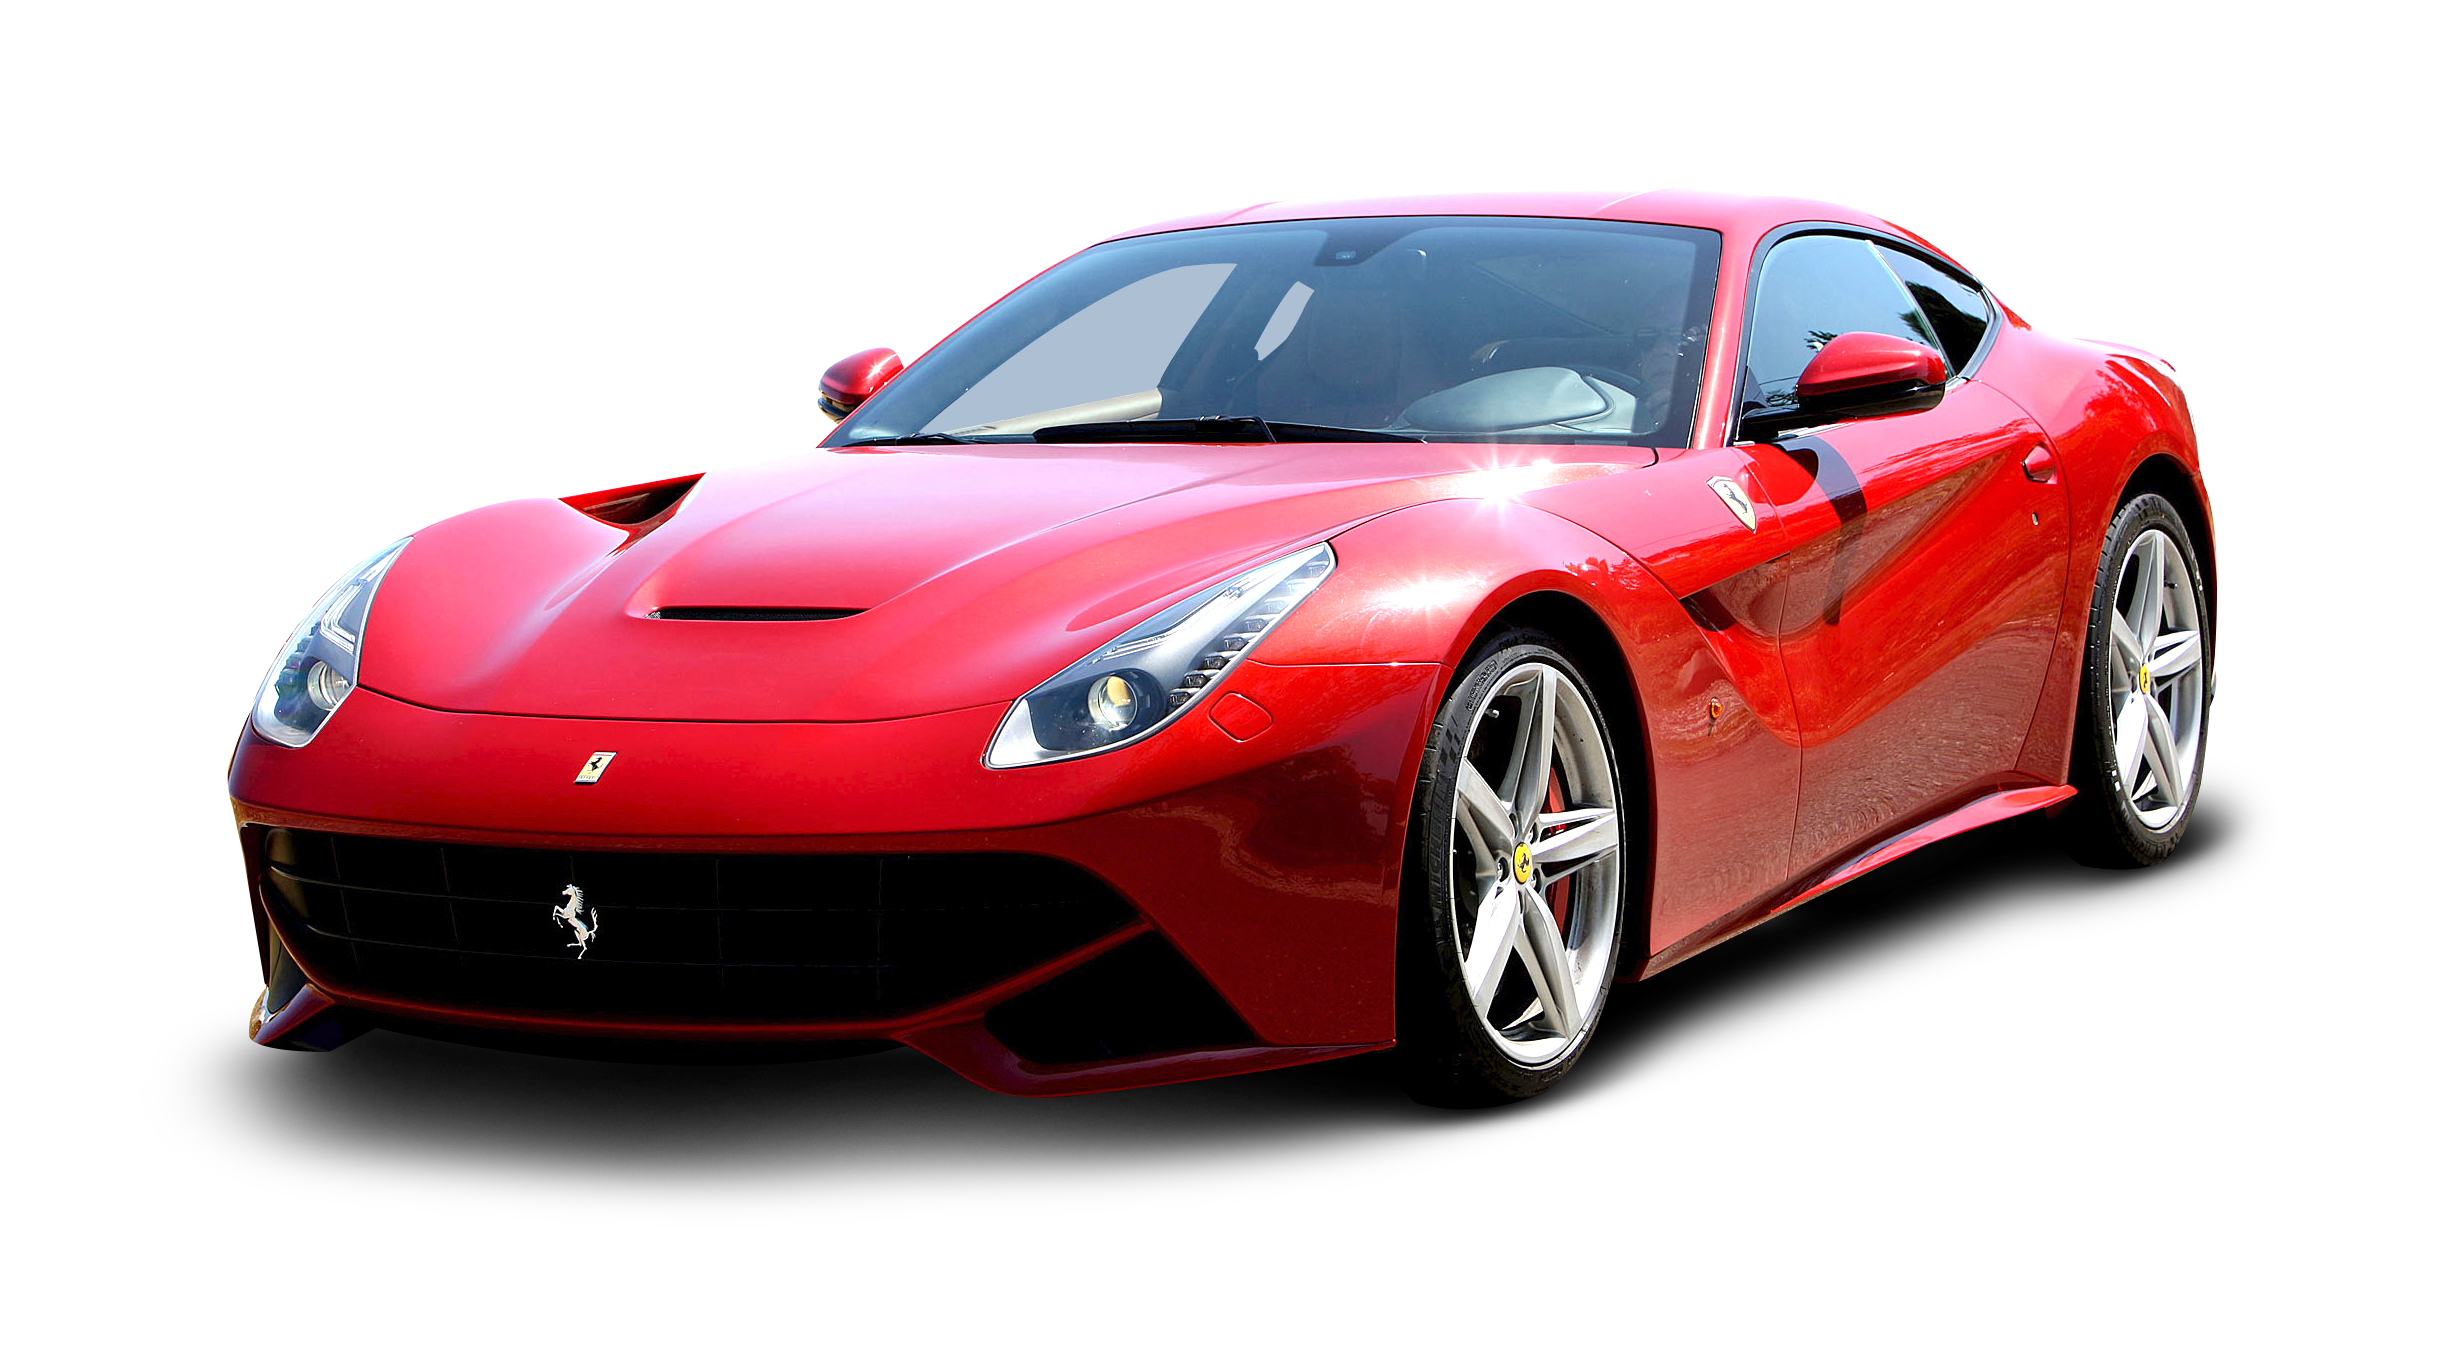 Red Ferrari F12 Berlinetta Car PNG Image.